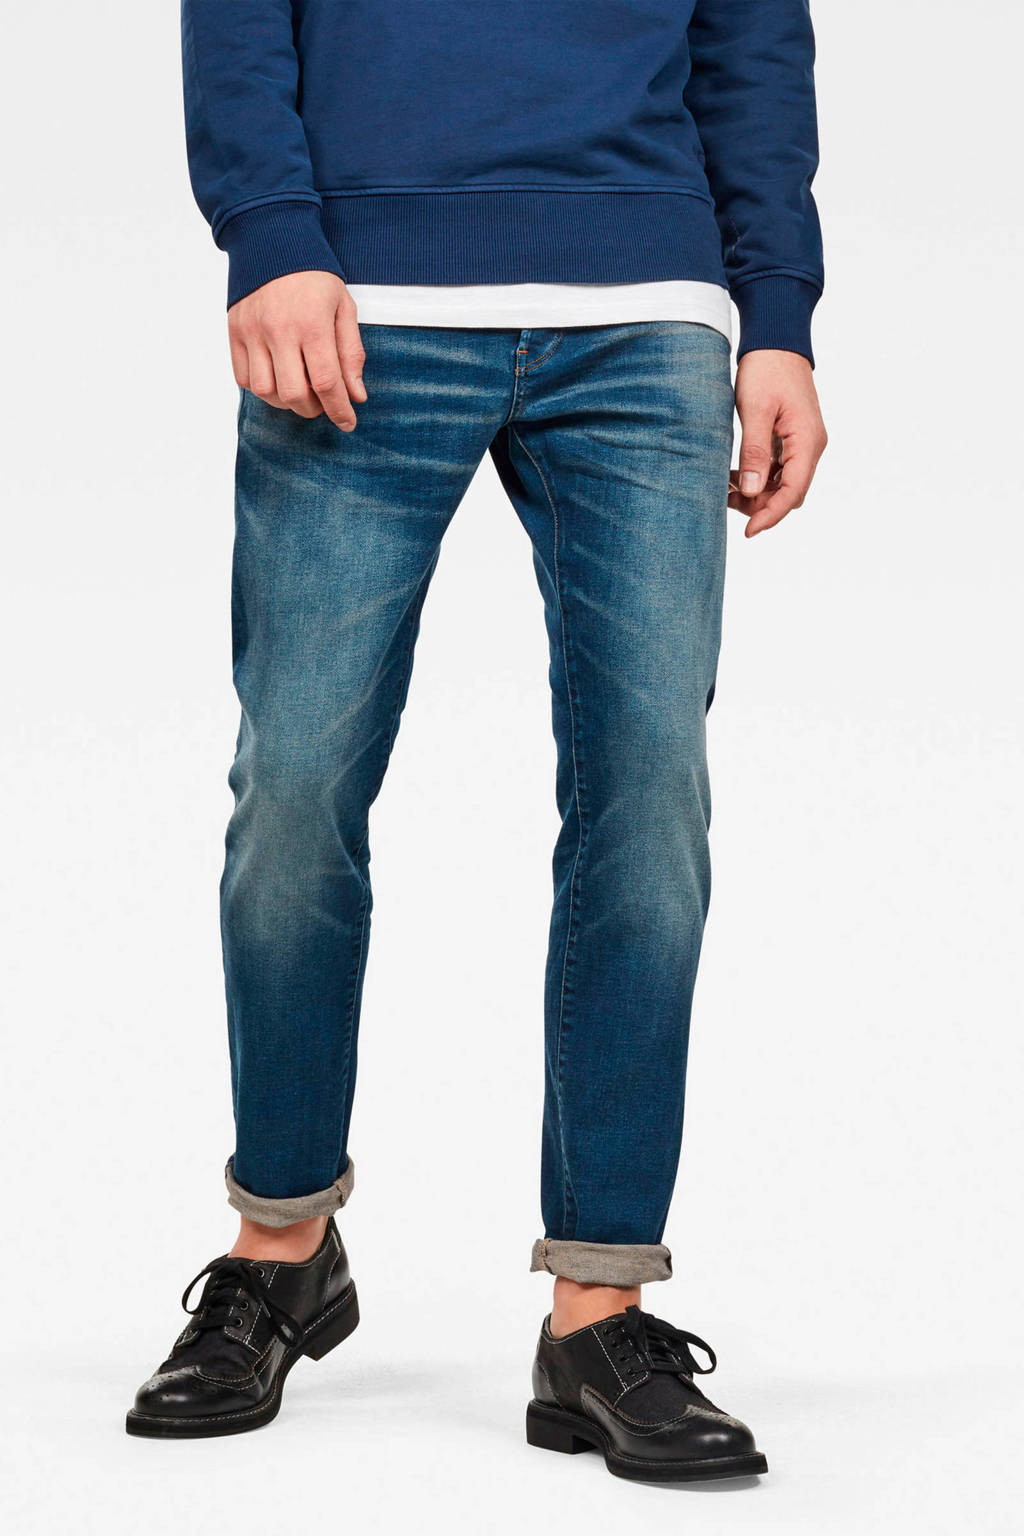 G-Star RAW slim fit jeans 3301 worker blue faded